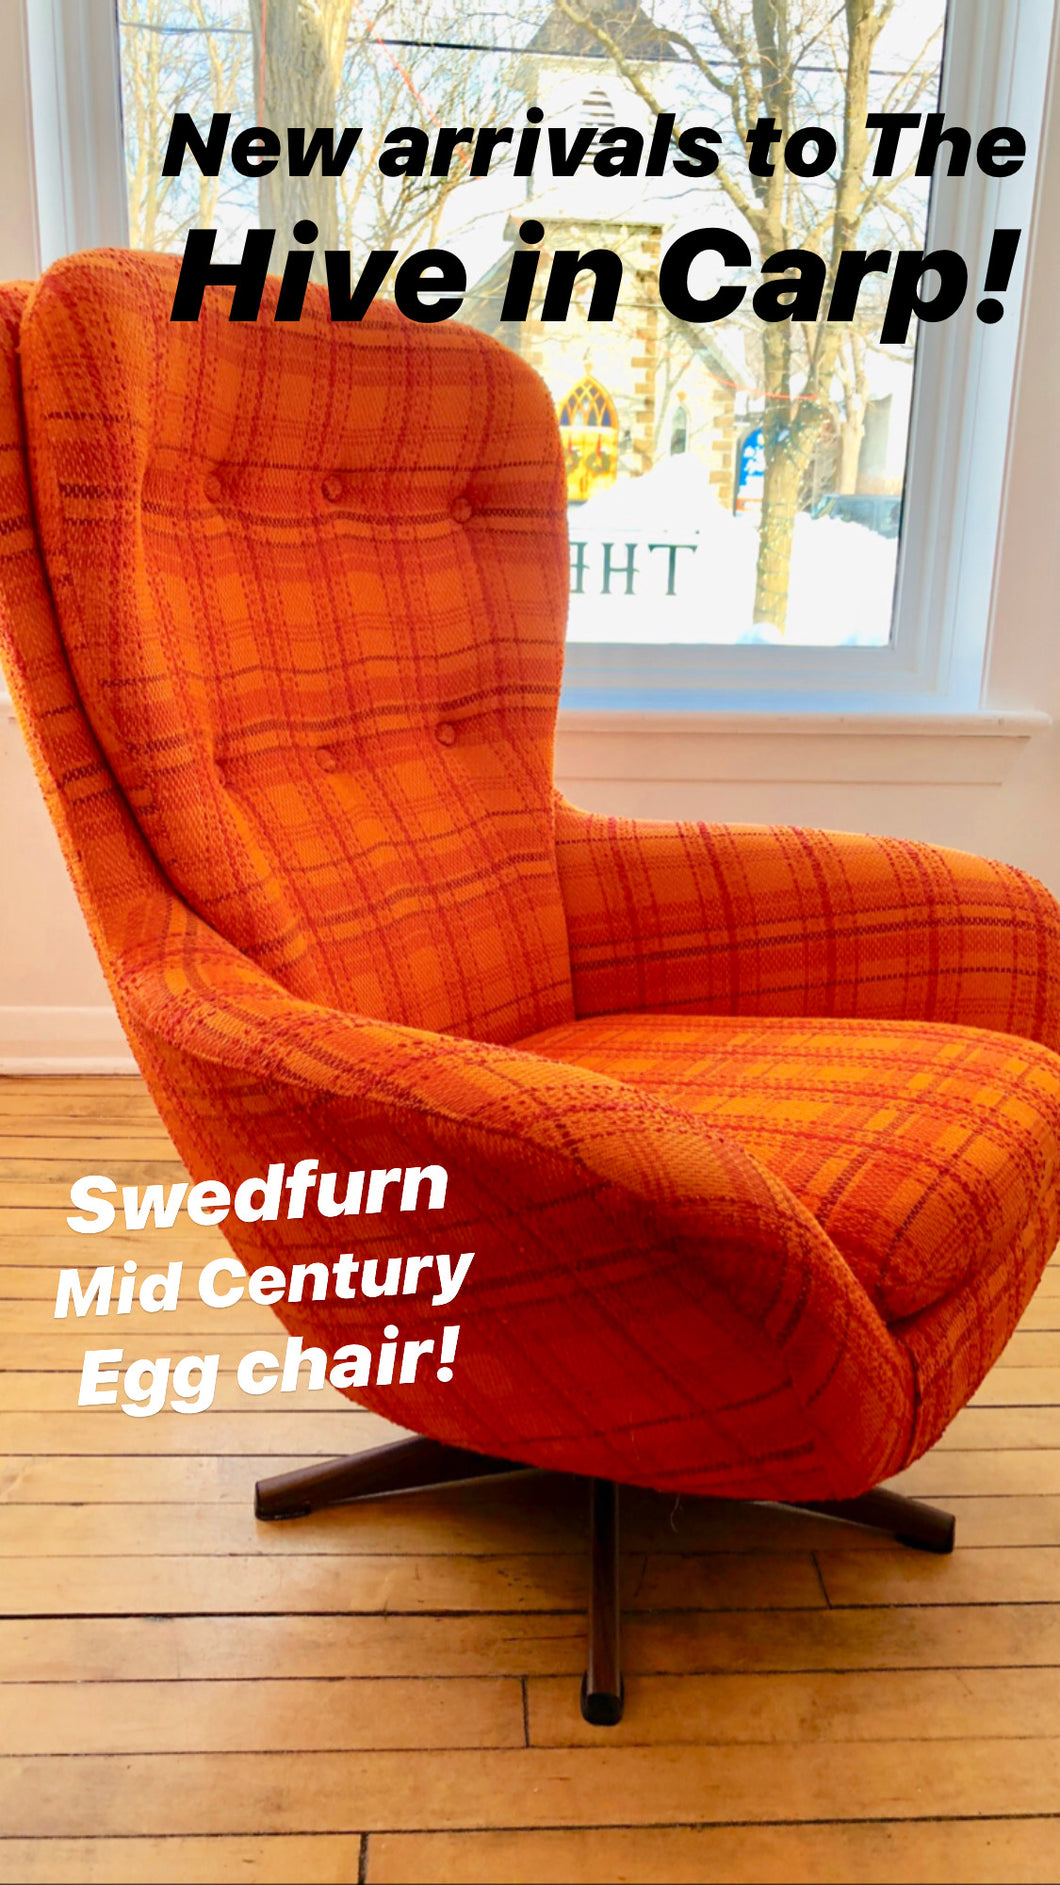 Mid Century Swedfurn Chair